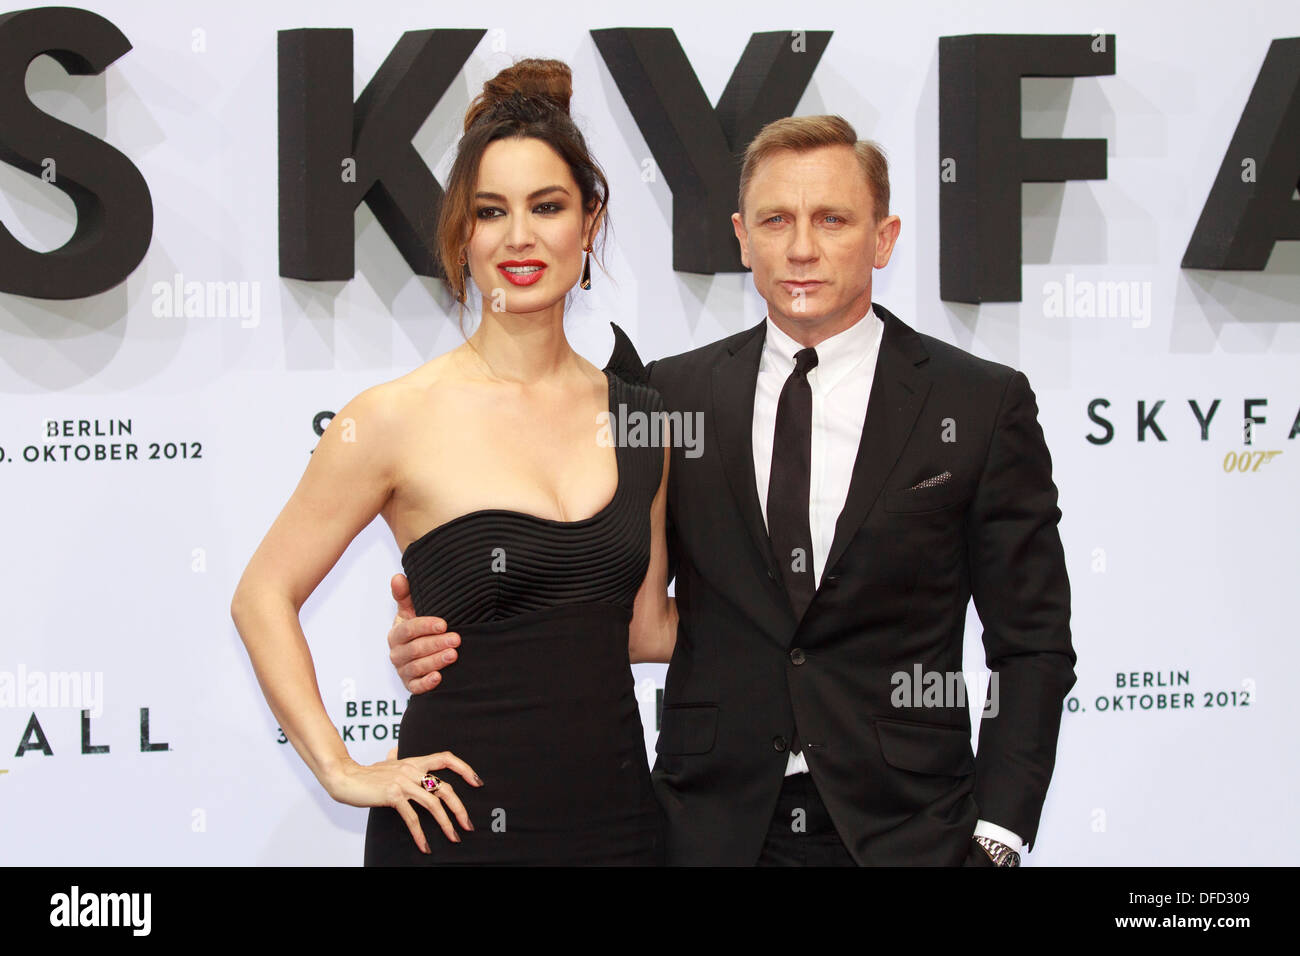 Actor Daniel Craig and actress Berenice Marlohe during ' Skyfall ' movie premiere in Berlin on 30th October 2012 - Stock Image